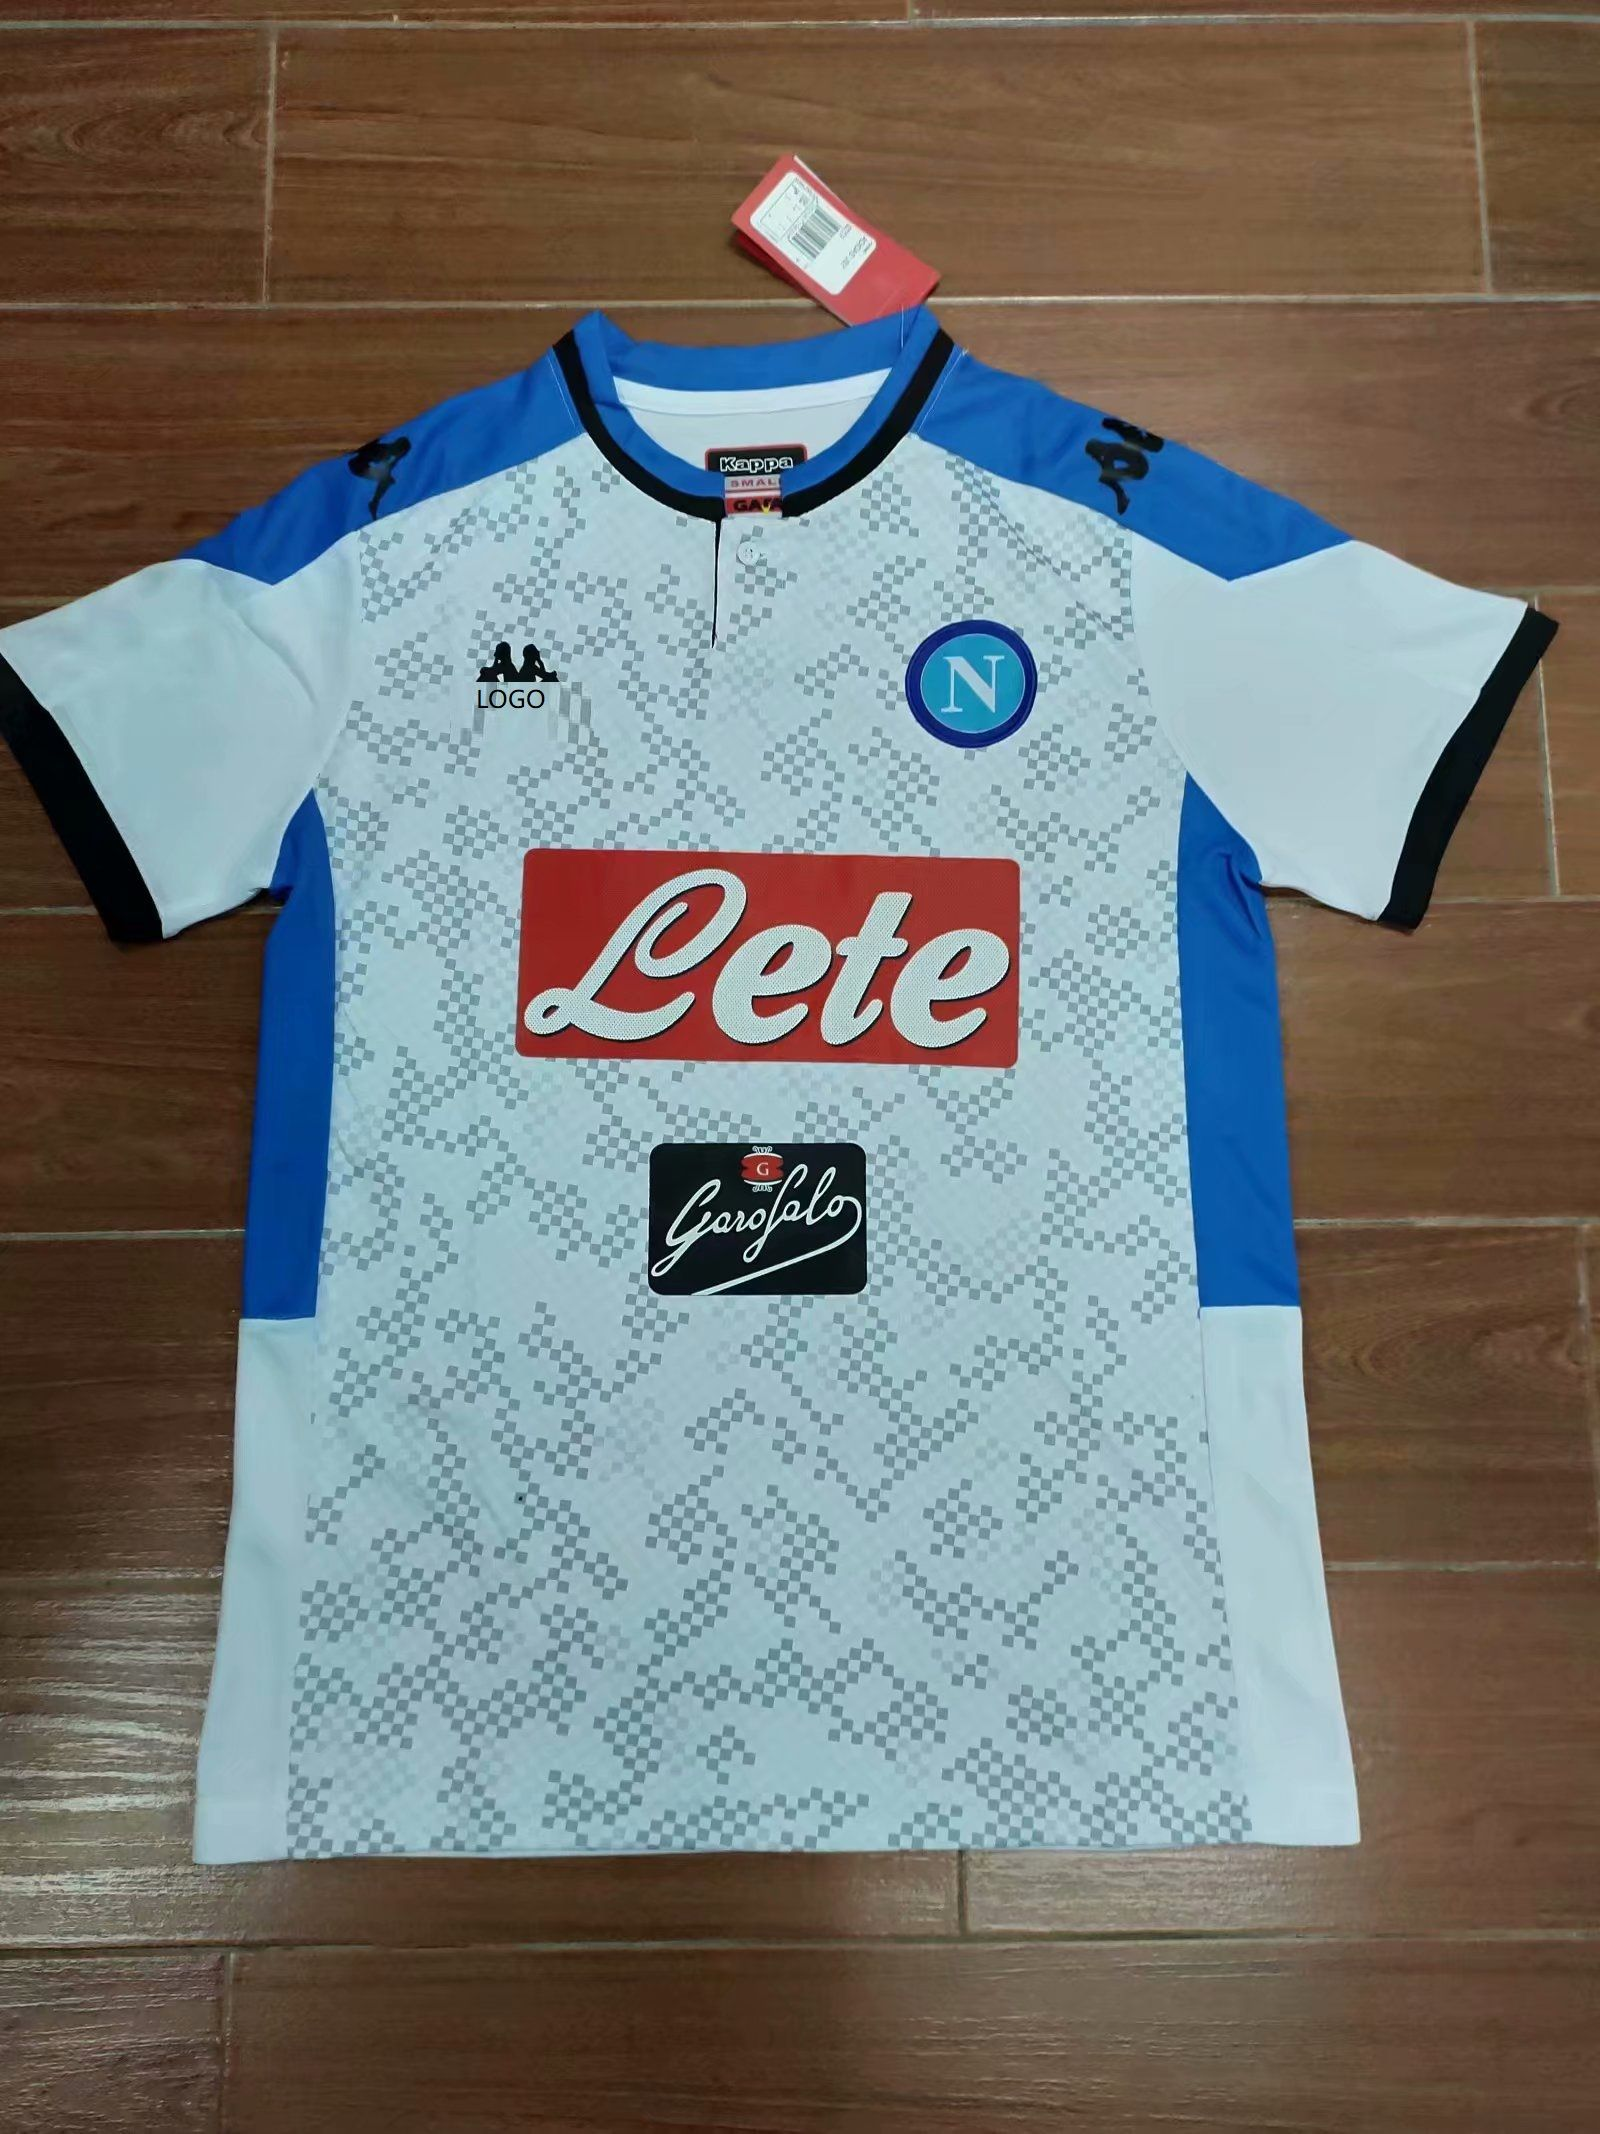 2019 20 Adult Thai Quality Napoli Home Soccer Jersey